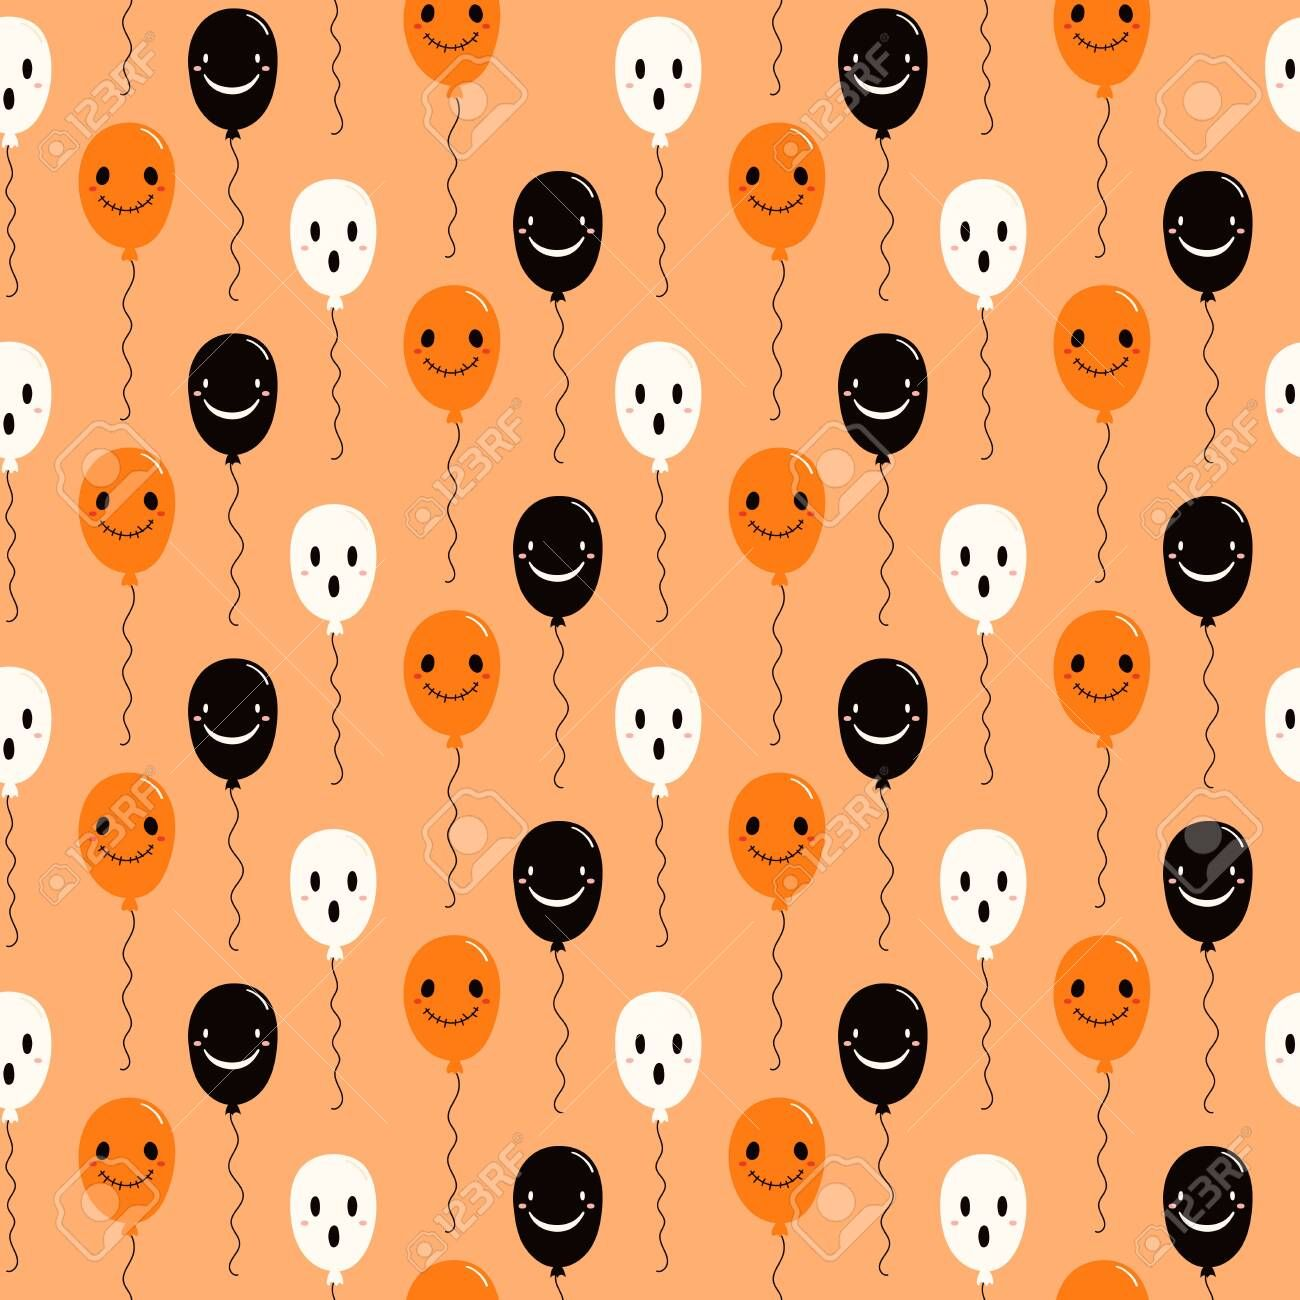 Hand drawn seamless vector pattern with cute flying balloons, on a light orange background. Kawaii